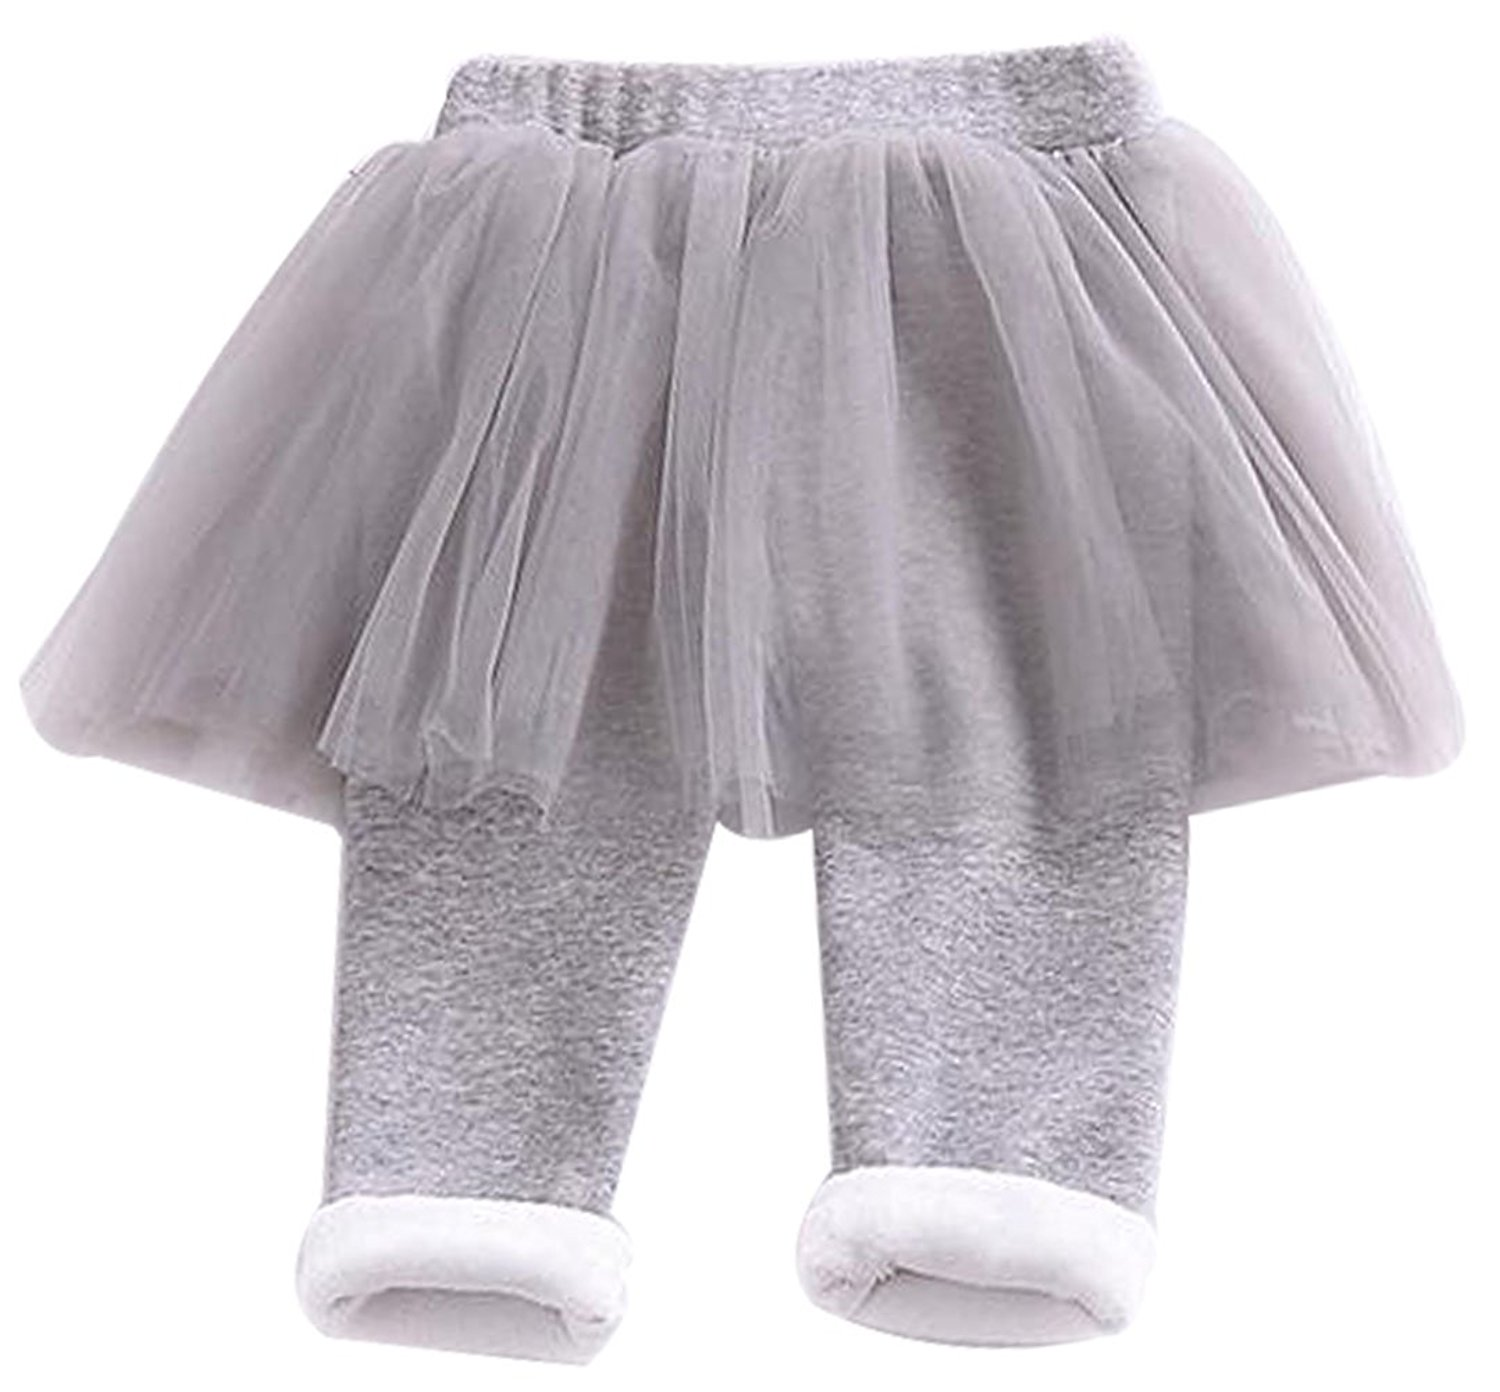 a33ff358e Get Quotations · LOTUCY Kids Baby Girls Warm Fleece Tulle Patchwork Tutu  Skirts Pants Winter Warm Legging Tight